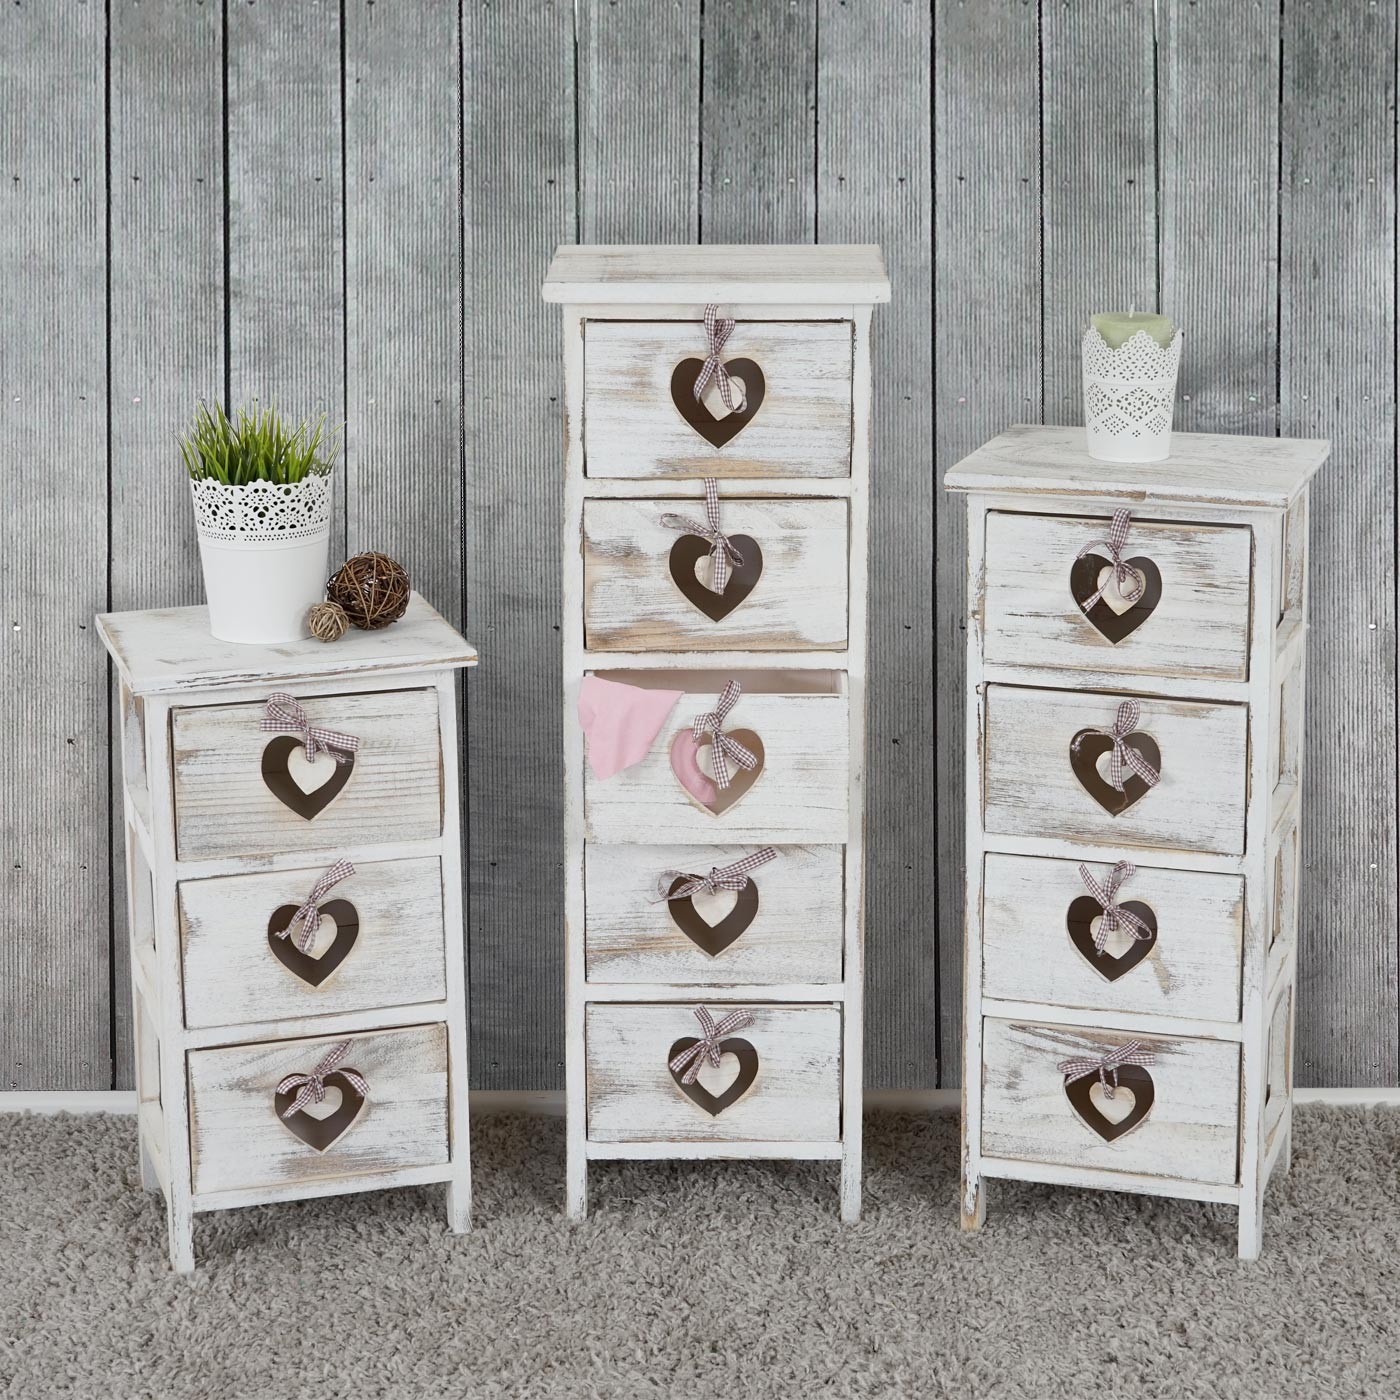 kommode forli schubladenkommode schrank shabby look vintage wei. Black Bedroom Furniture Sets. Home Design Ideas